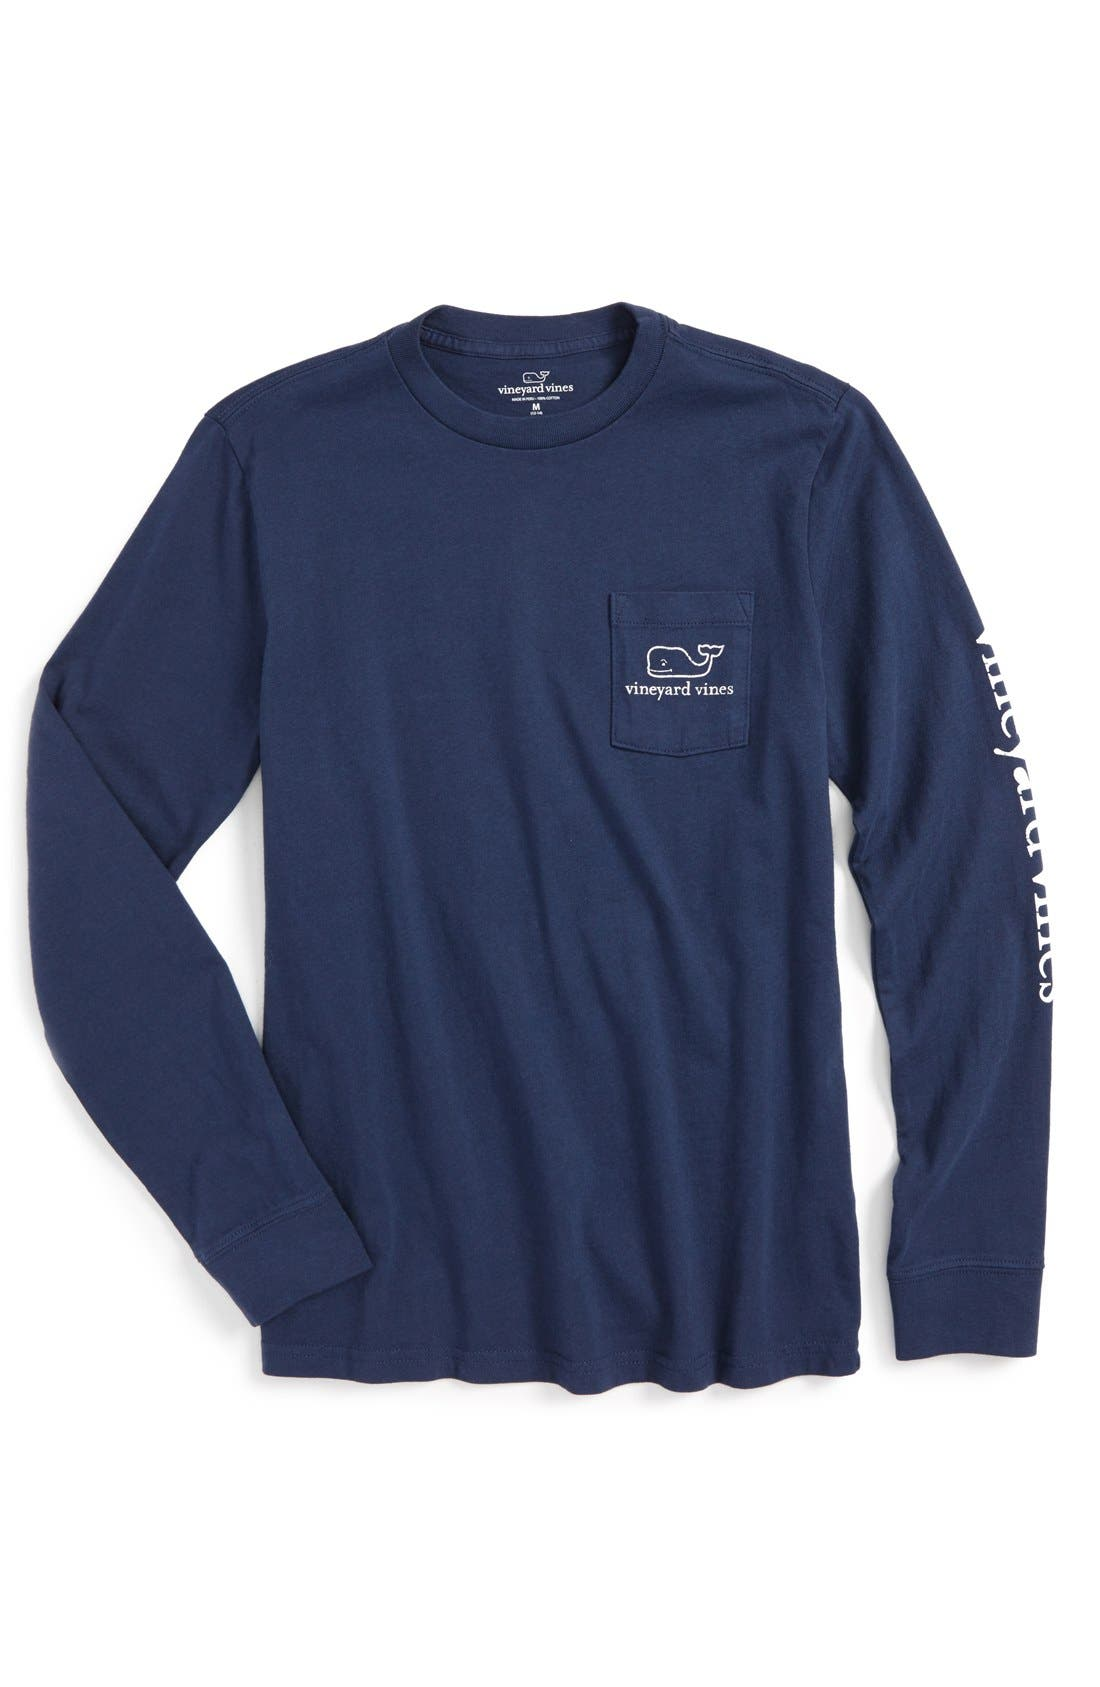 Alternate Image 1 Selected - vineyard vines Vintage Whale Graphic Long Sleeve T-Shirt (Big Boys)